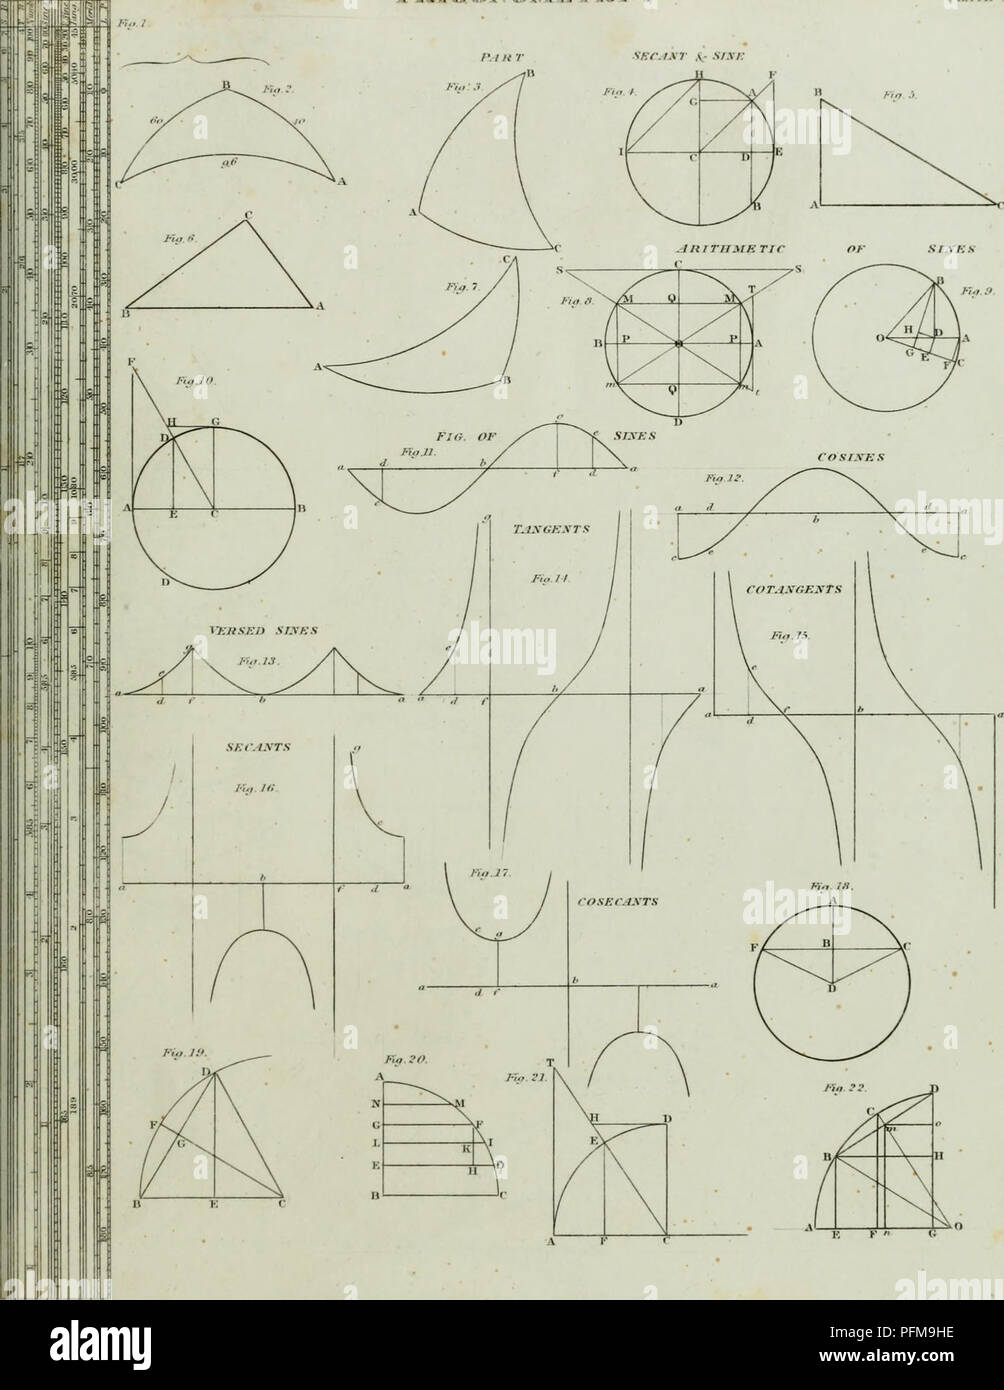 Jti Stock Photos Images Alamy Oliver 1850 Wiring Diagram Free Download Schematic The Cyclopaedia Or Universal Dictionary Of Arts Sciences And Literature